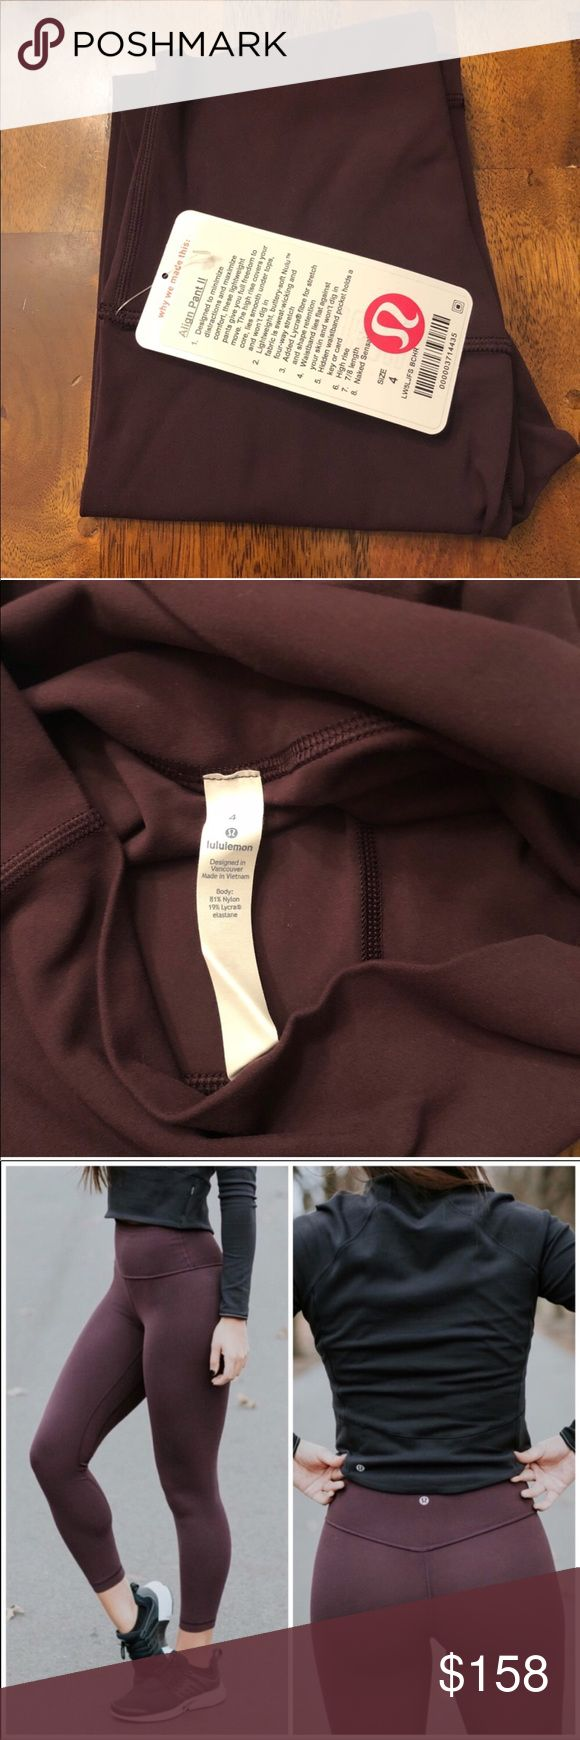 """Lululemon Align II 7/8 25"""" NWT BLACK CHERRY 4 NWT SOLDOUT SIZE AND COLOR COMBO NEW WITH TAG BLACK CHERRY  sz4   ✌🏼priced to encourage reasonable offers 🖤 will not sell below retail 🍋posh fee is 20% of sale price lululemon athletica Pants Leggings"""